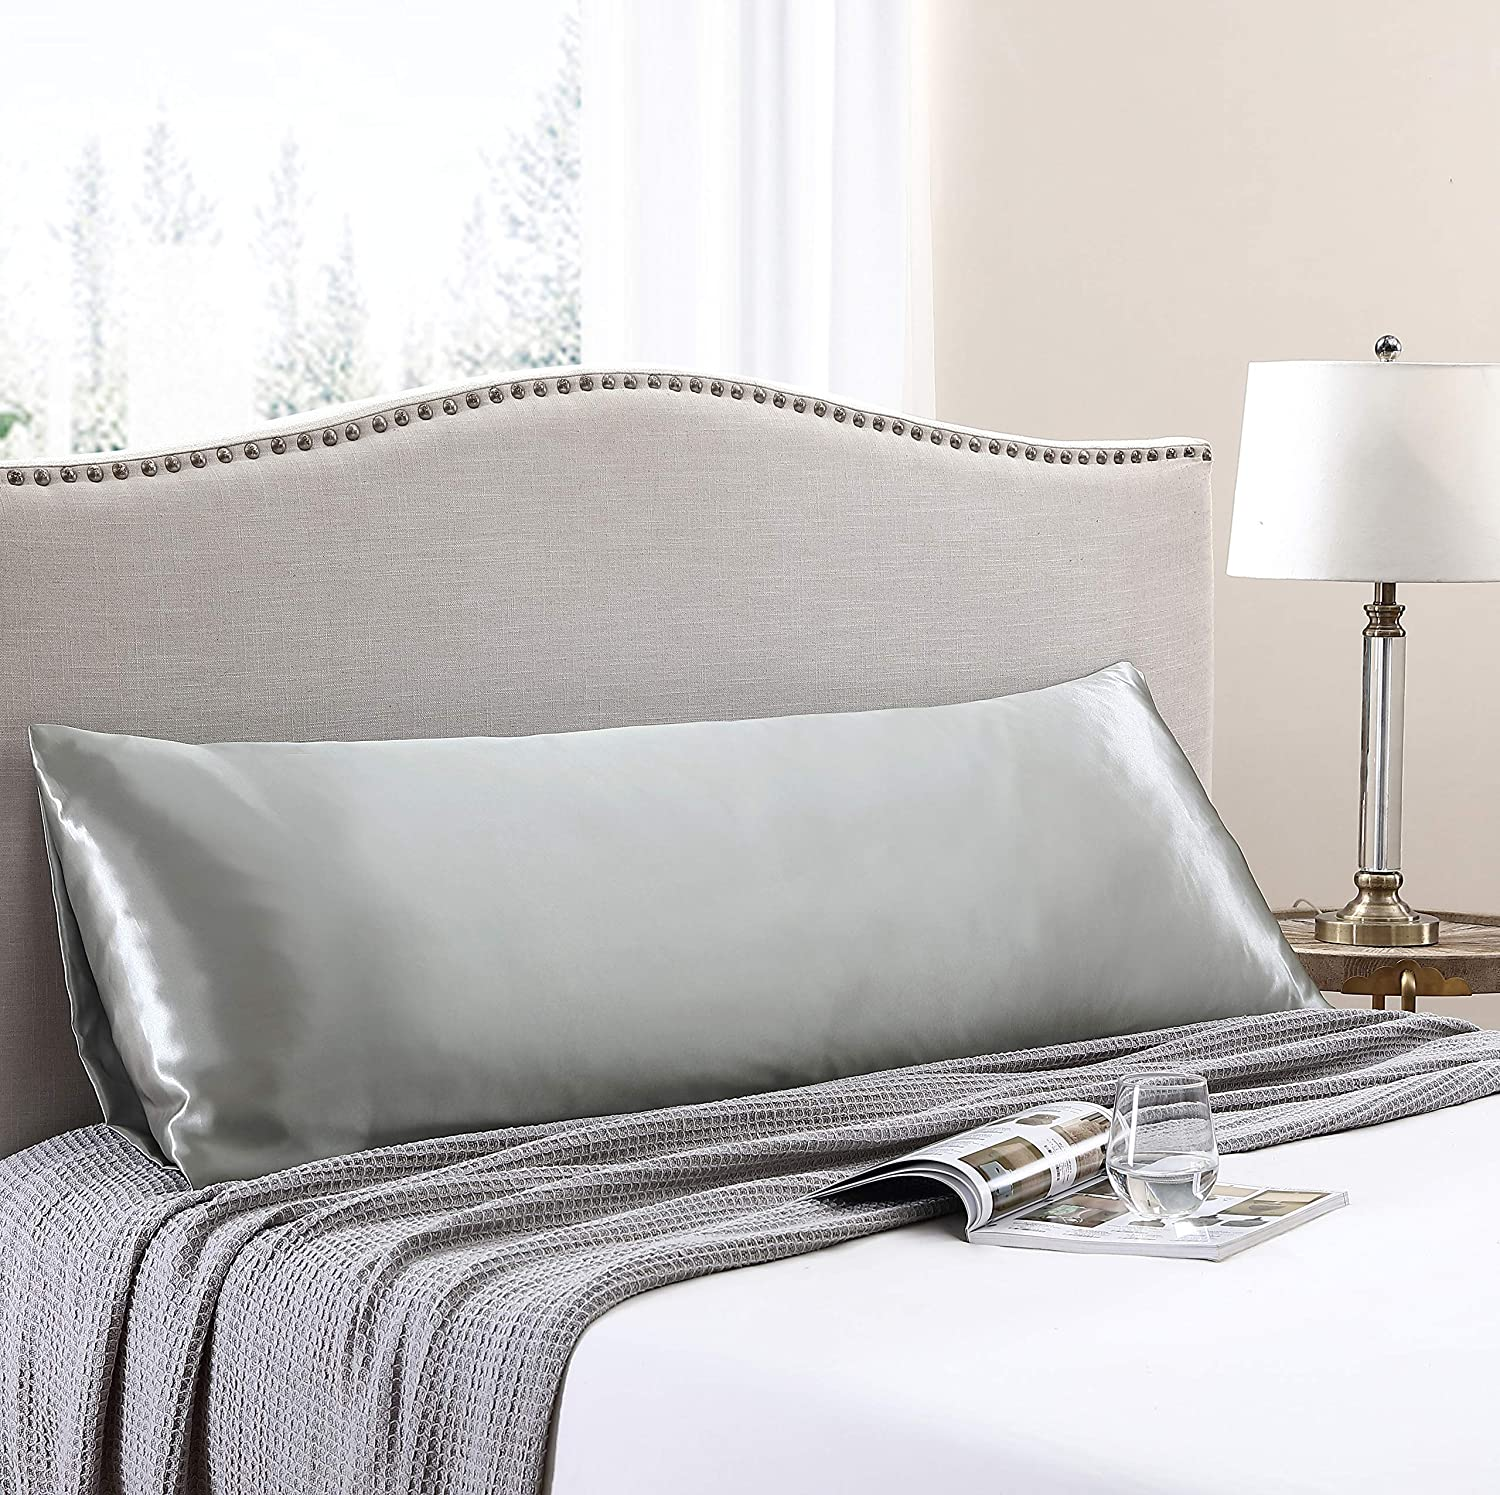 Love's cabin Body Pillow Cover, 20x54 inches Light Grey Soft Satin Body Pillow case with Envelope Closure, Silky Slip Cooling Body Pillow Pillowcases for Hair and Skin